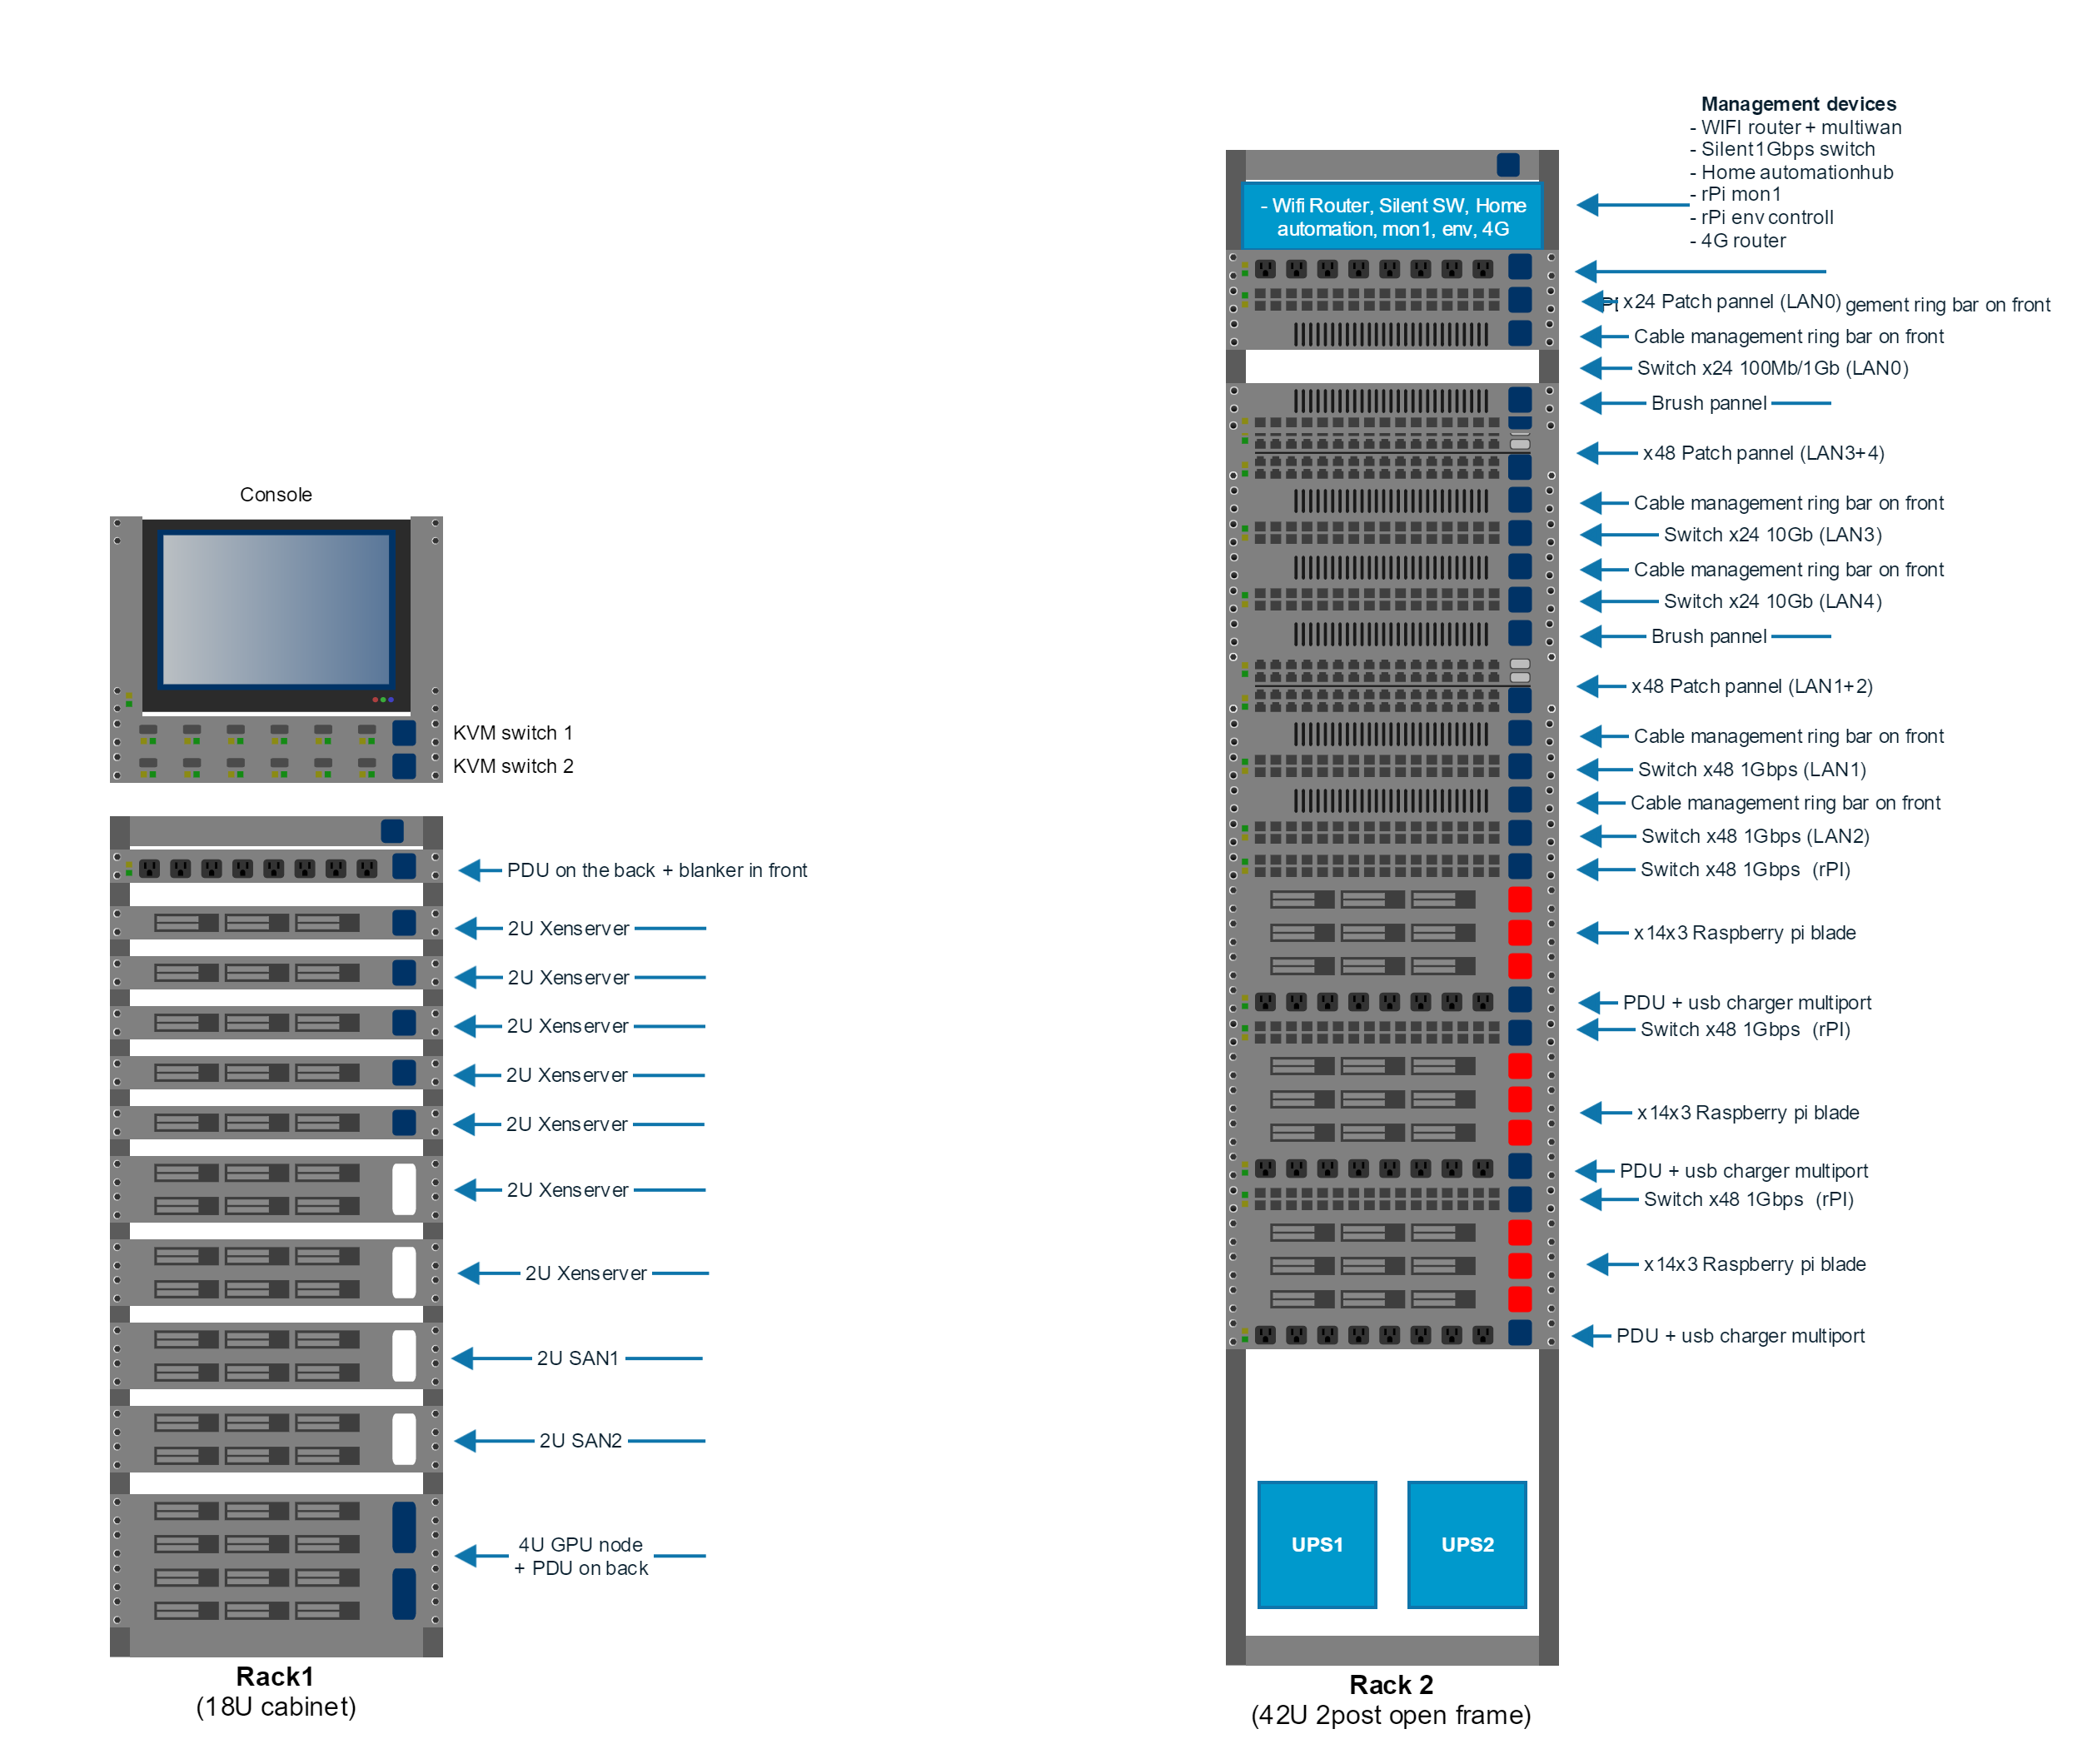 Rack Diagram For The Cluster